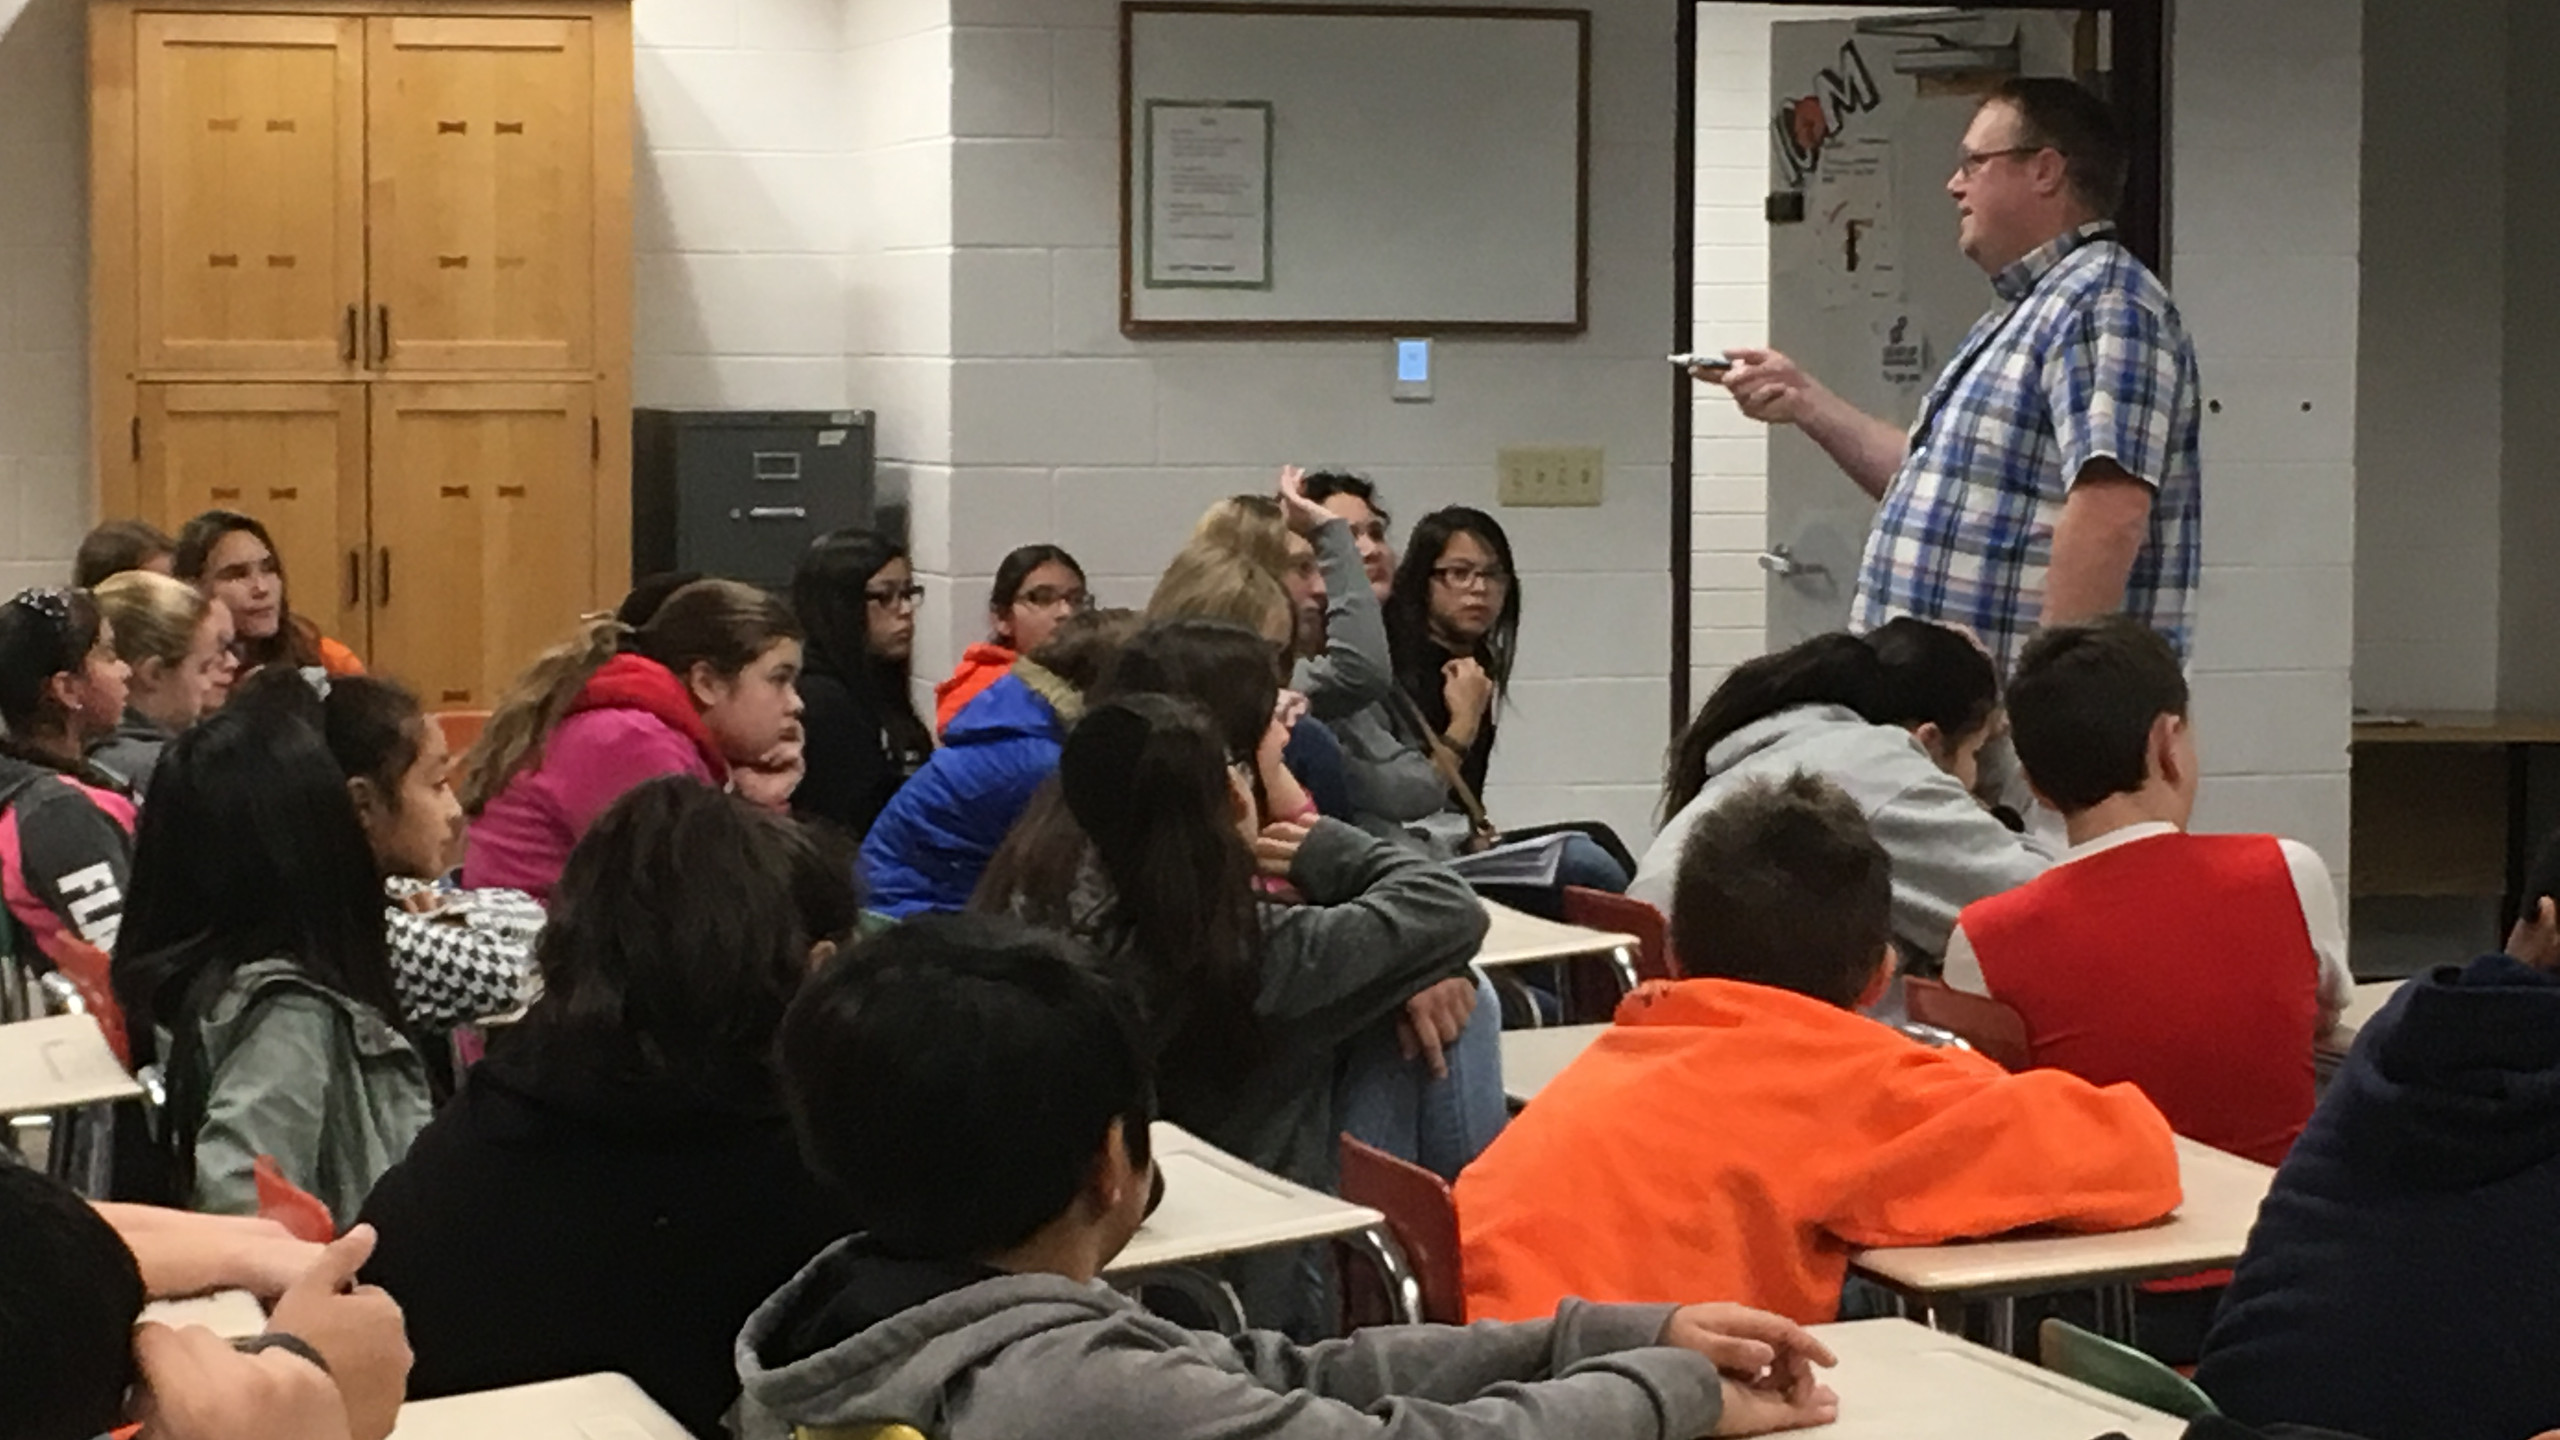 BMS Students listen to Cody as he instructs them on the dangers of vaping.